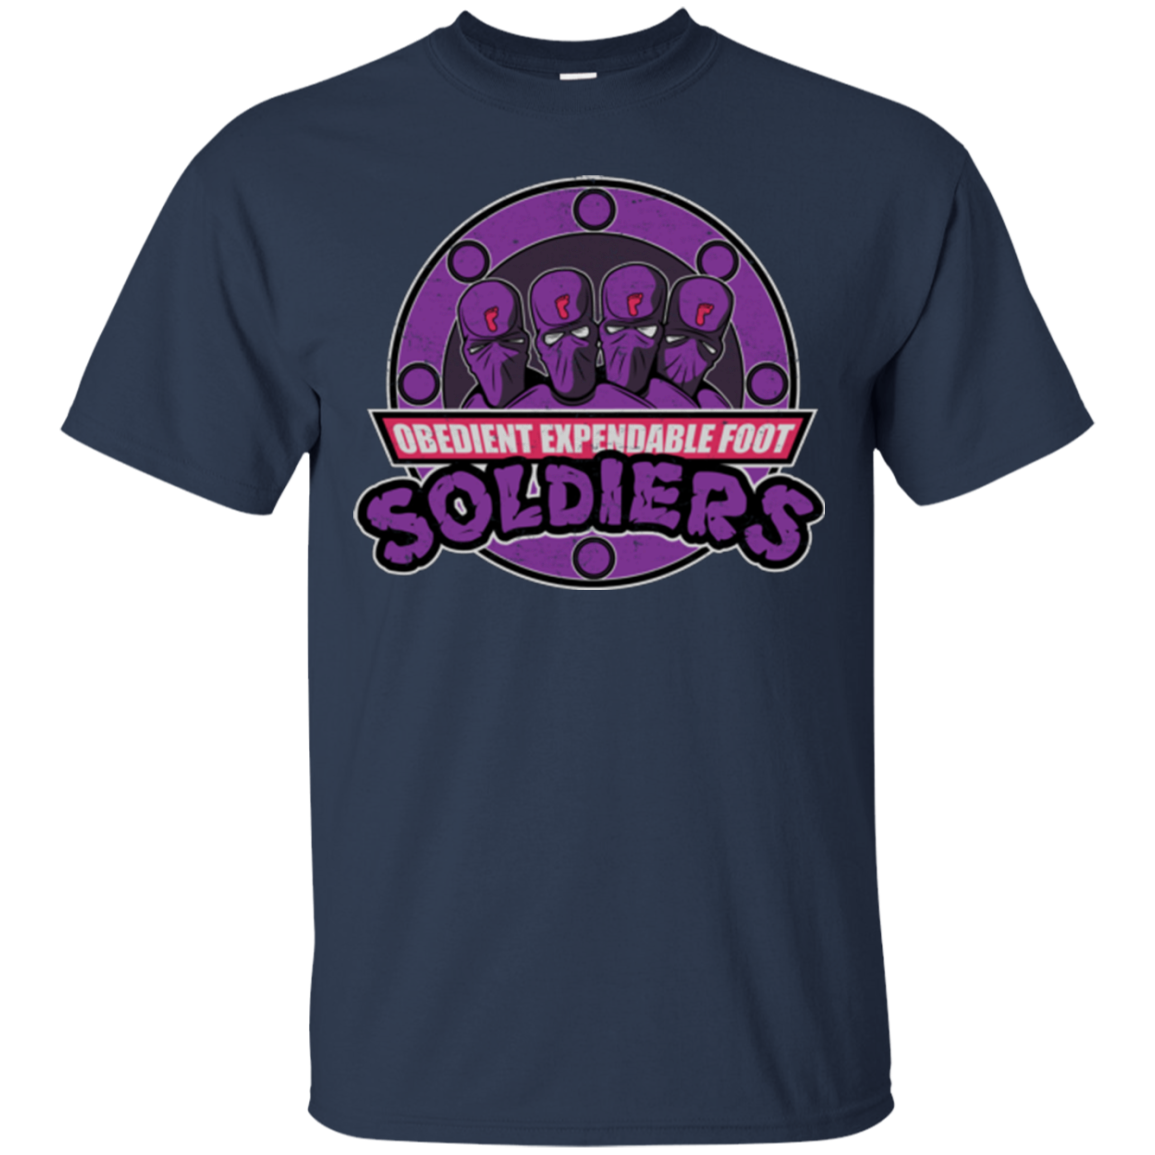 OBEDIENT EXPENDABLE FOOT SOLDIERS T-Shirt